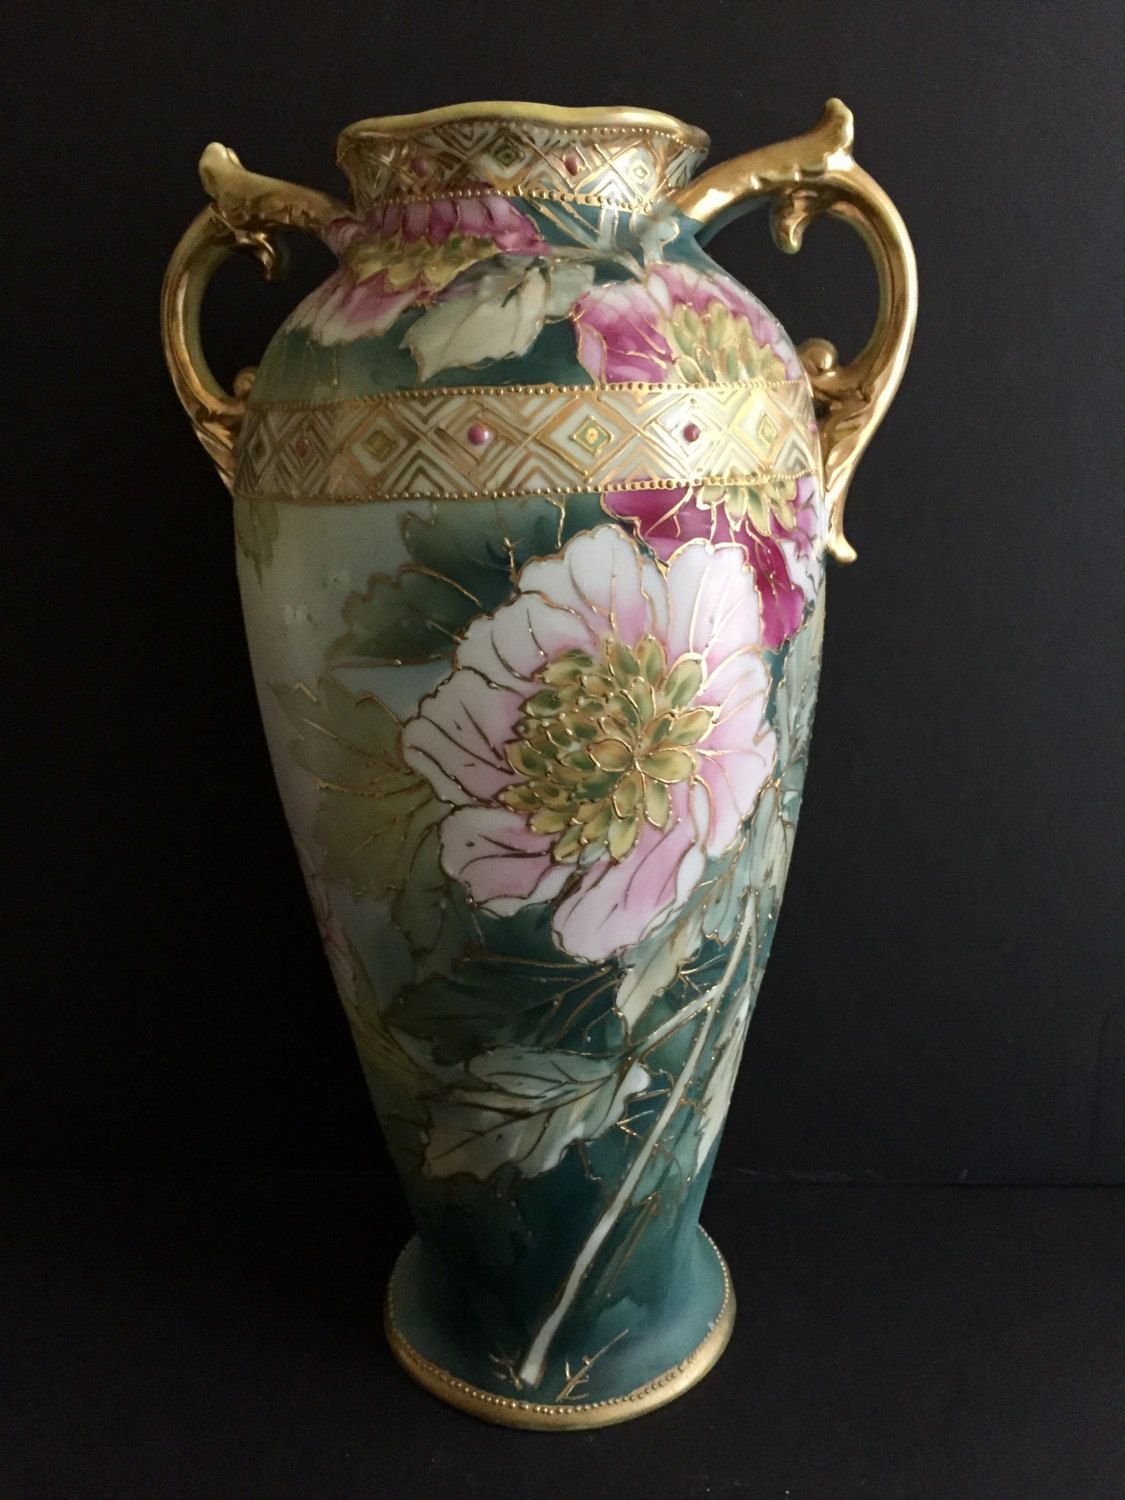 Antique nippon vase hand painted flowers with gold moriage accent antique nippon vase hand painted flowers with gold moriage accent reviewsmspy